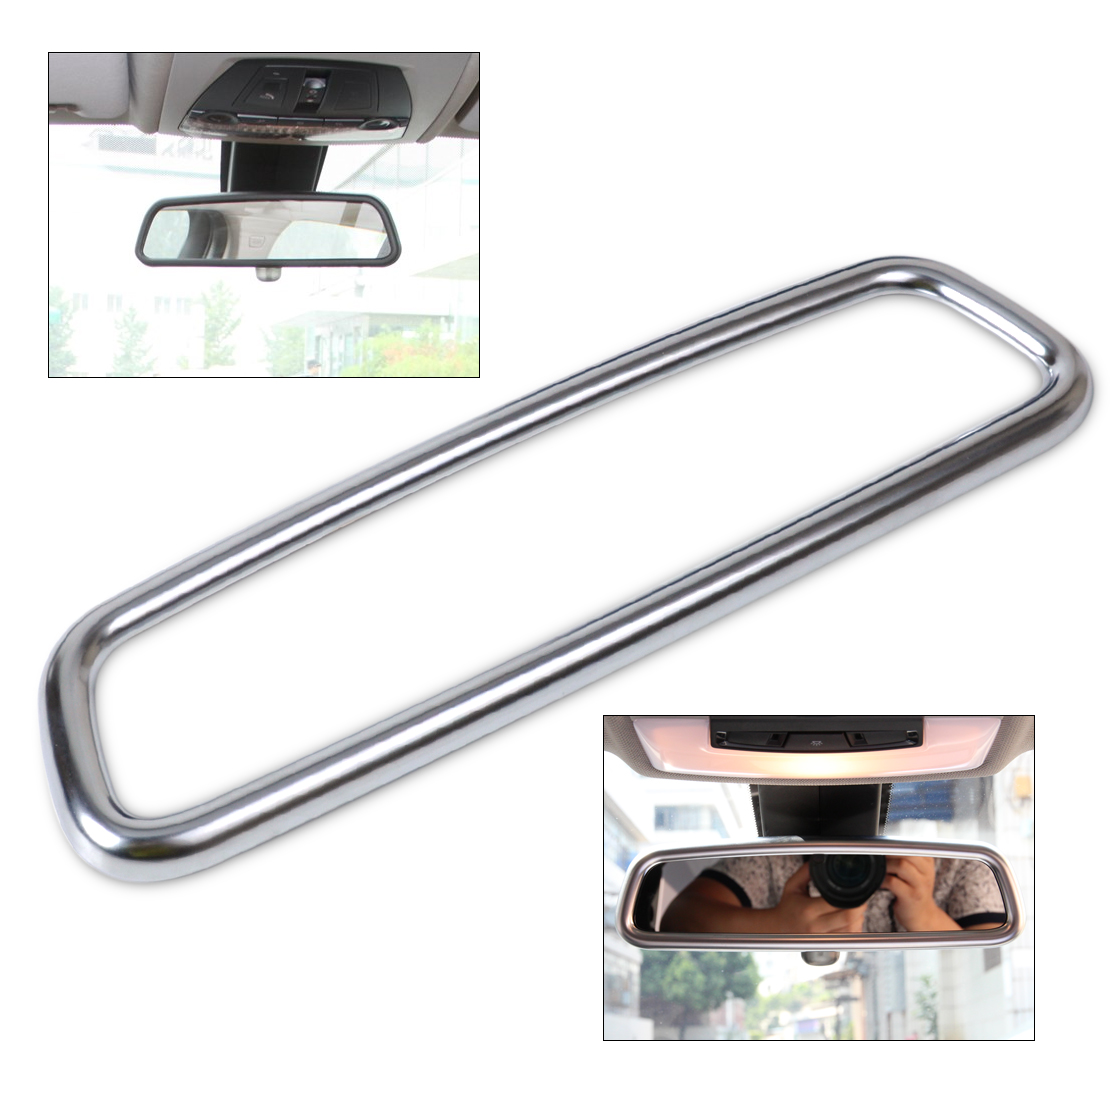 CITALL Chrome <font><b>Interior</b></font> Rear View Mirror Cover <font><b>Trim</b></font> Rear View Mirrors Decoration For <font><b>BMW</b></font> X1 X3 X5 X6 E84 F25 E71 <font><b>E70</b></font> 2010 - 2016 image